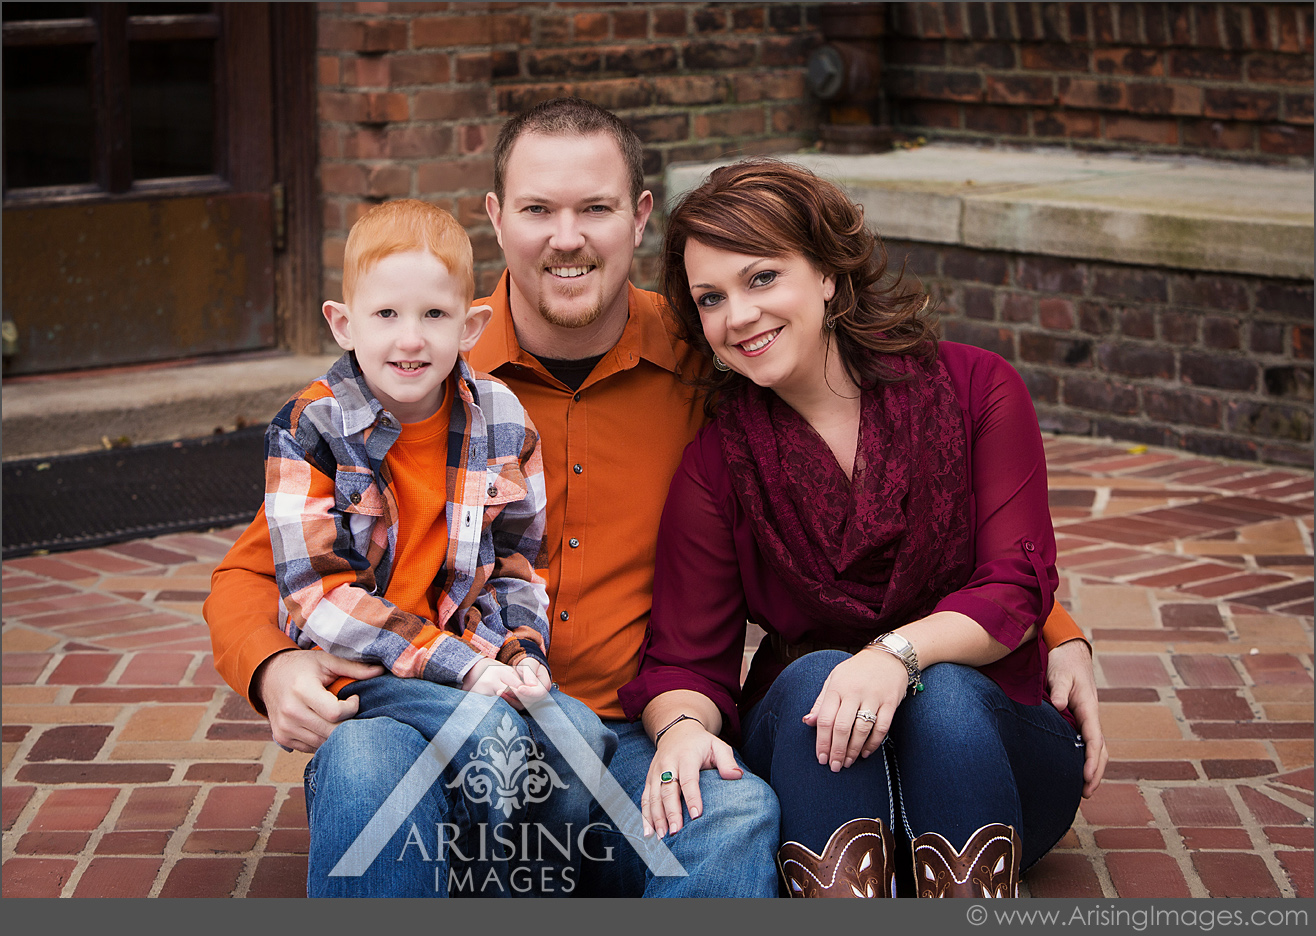 Family & Kids Photos Archives - Page 17 of 46 - Arising Images